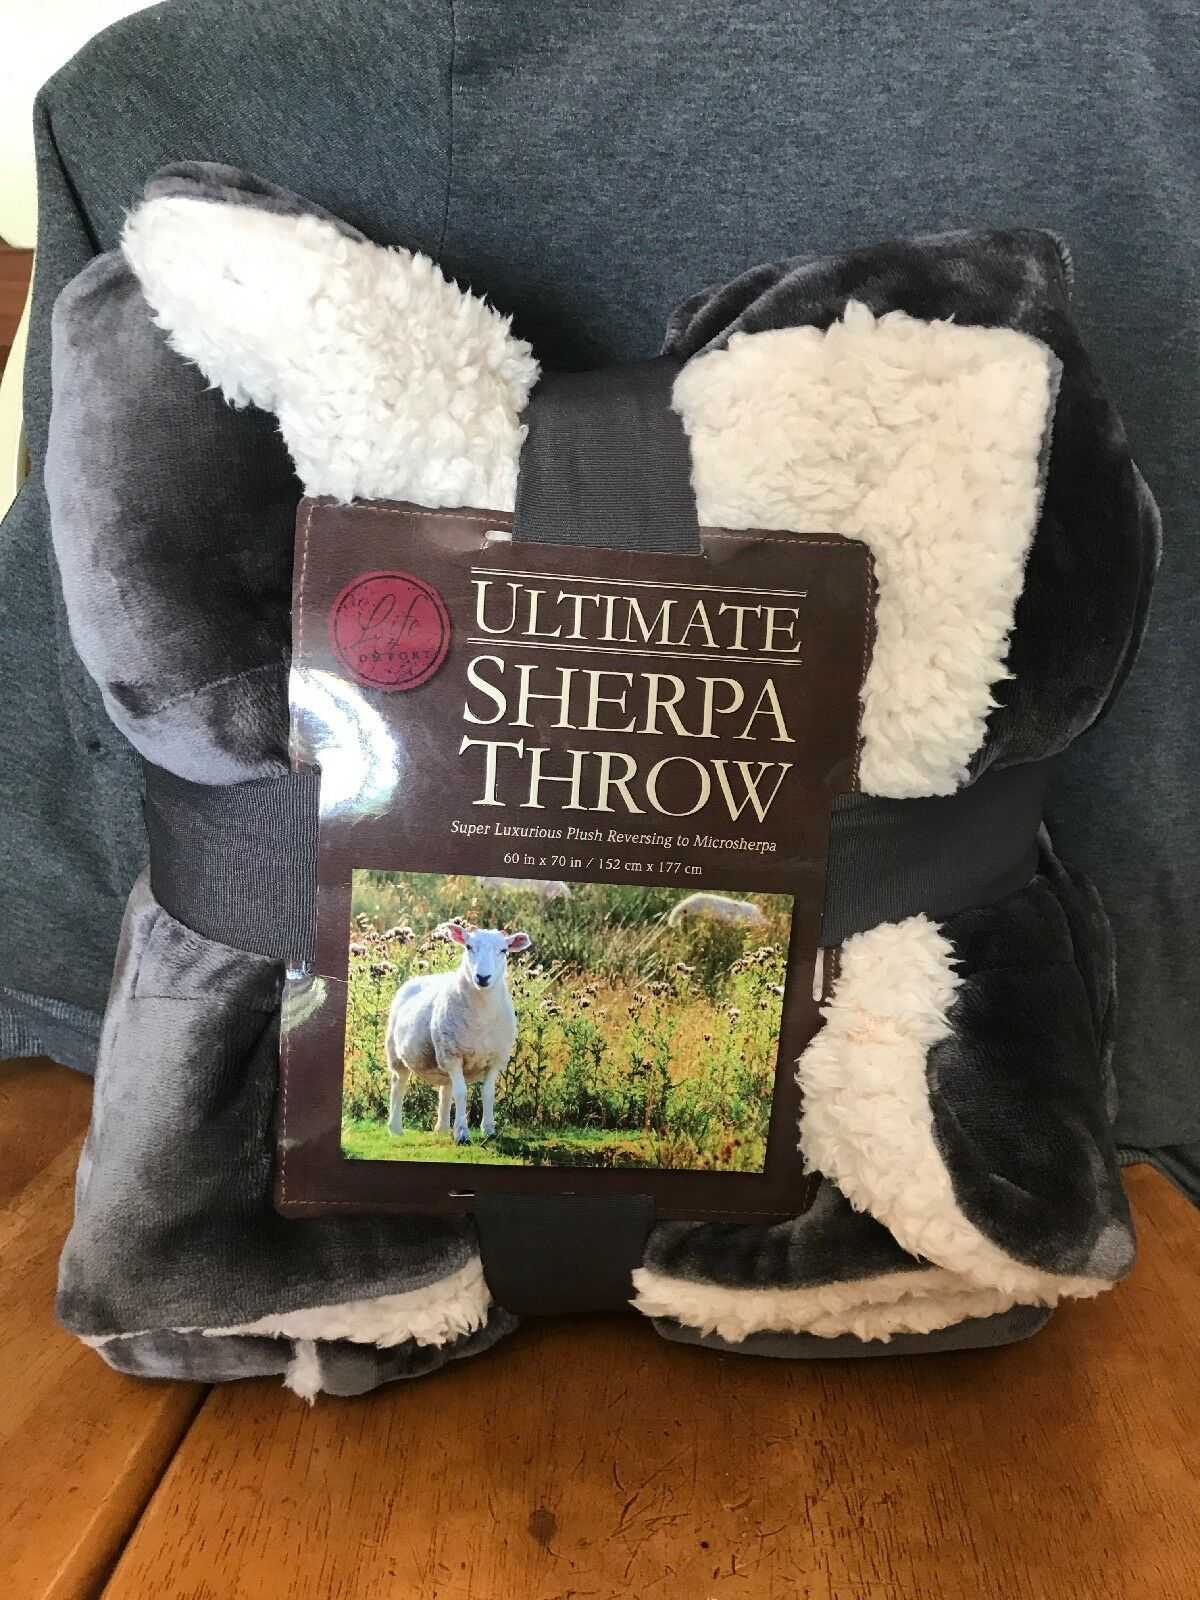 Ultimate Oversized & Reversible Sherpa Throw Blanket made by Life Comfort Grey